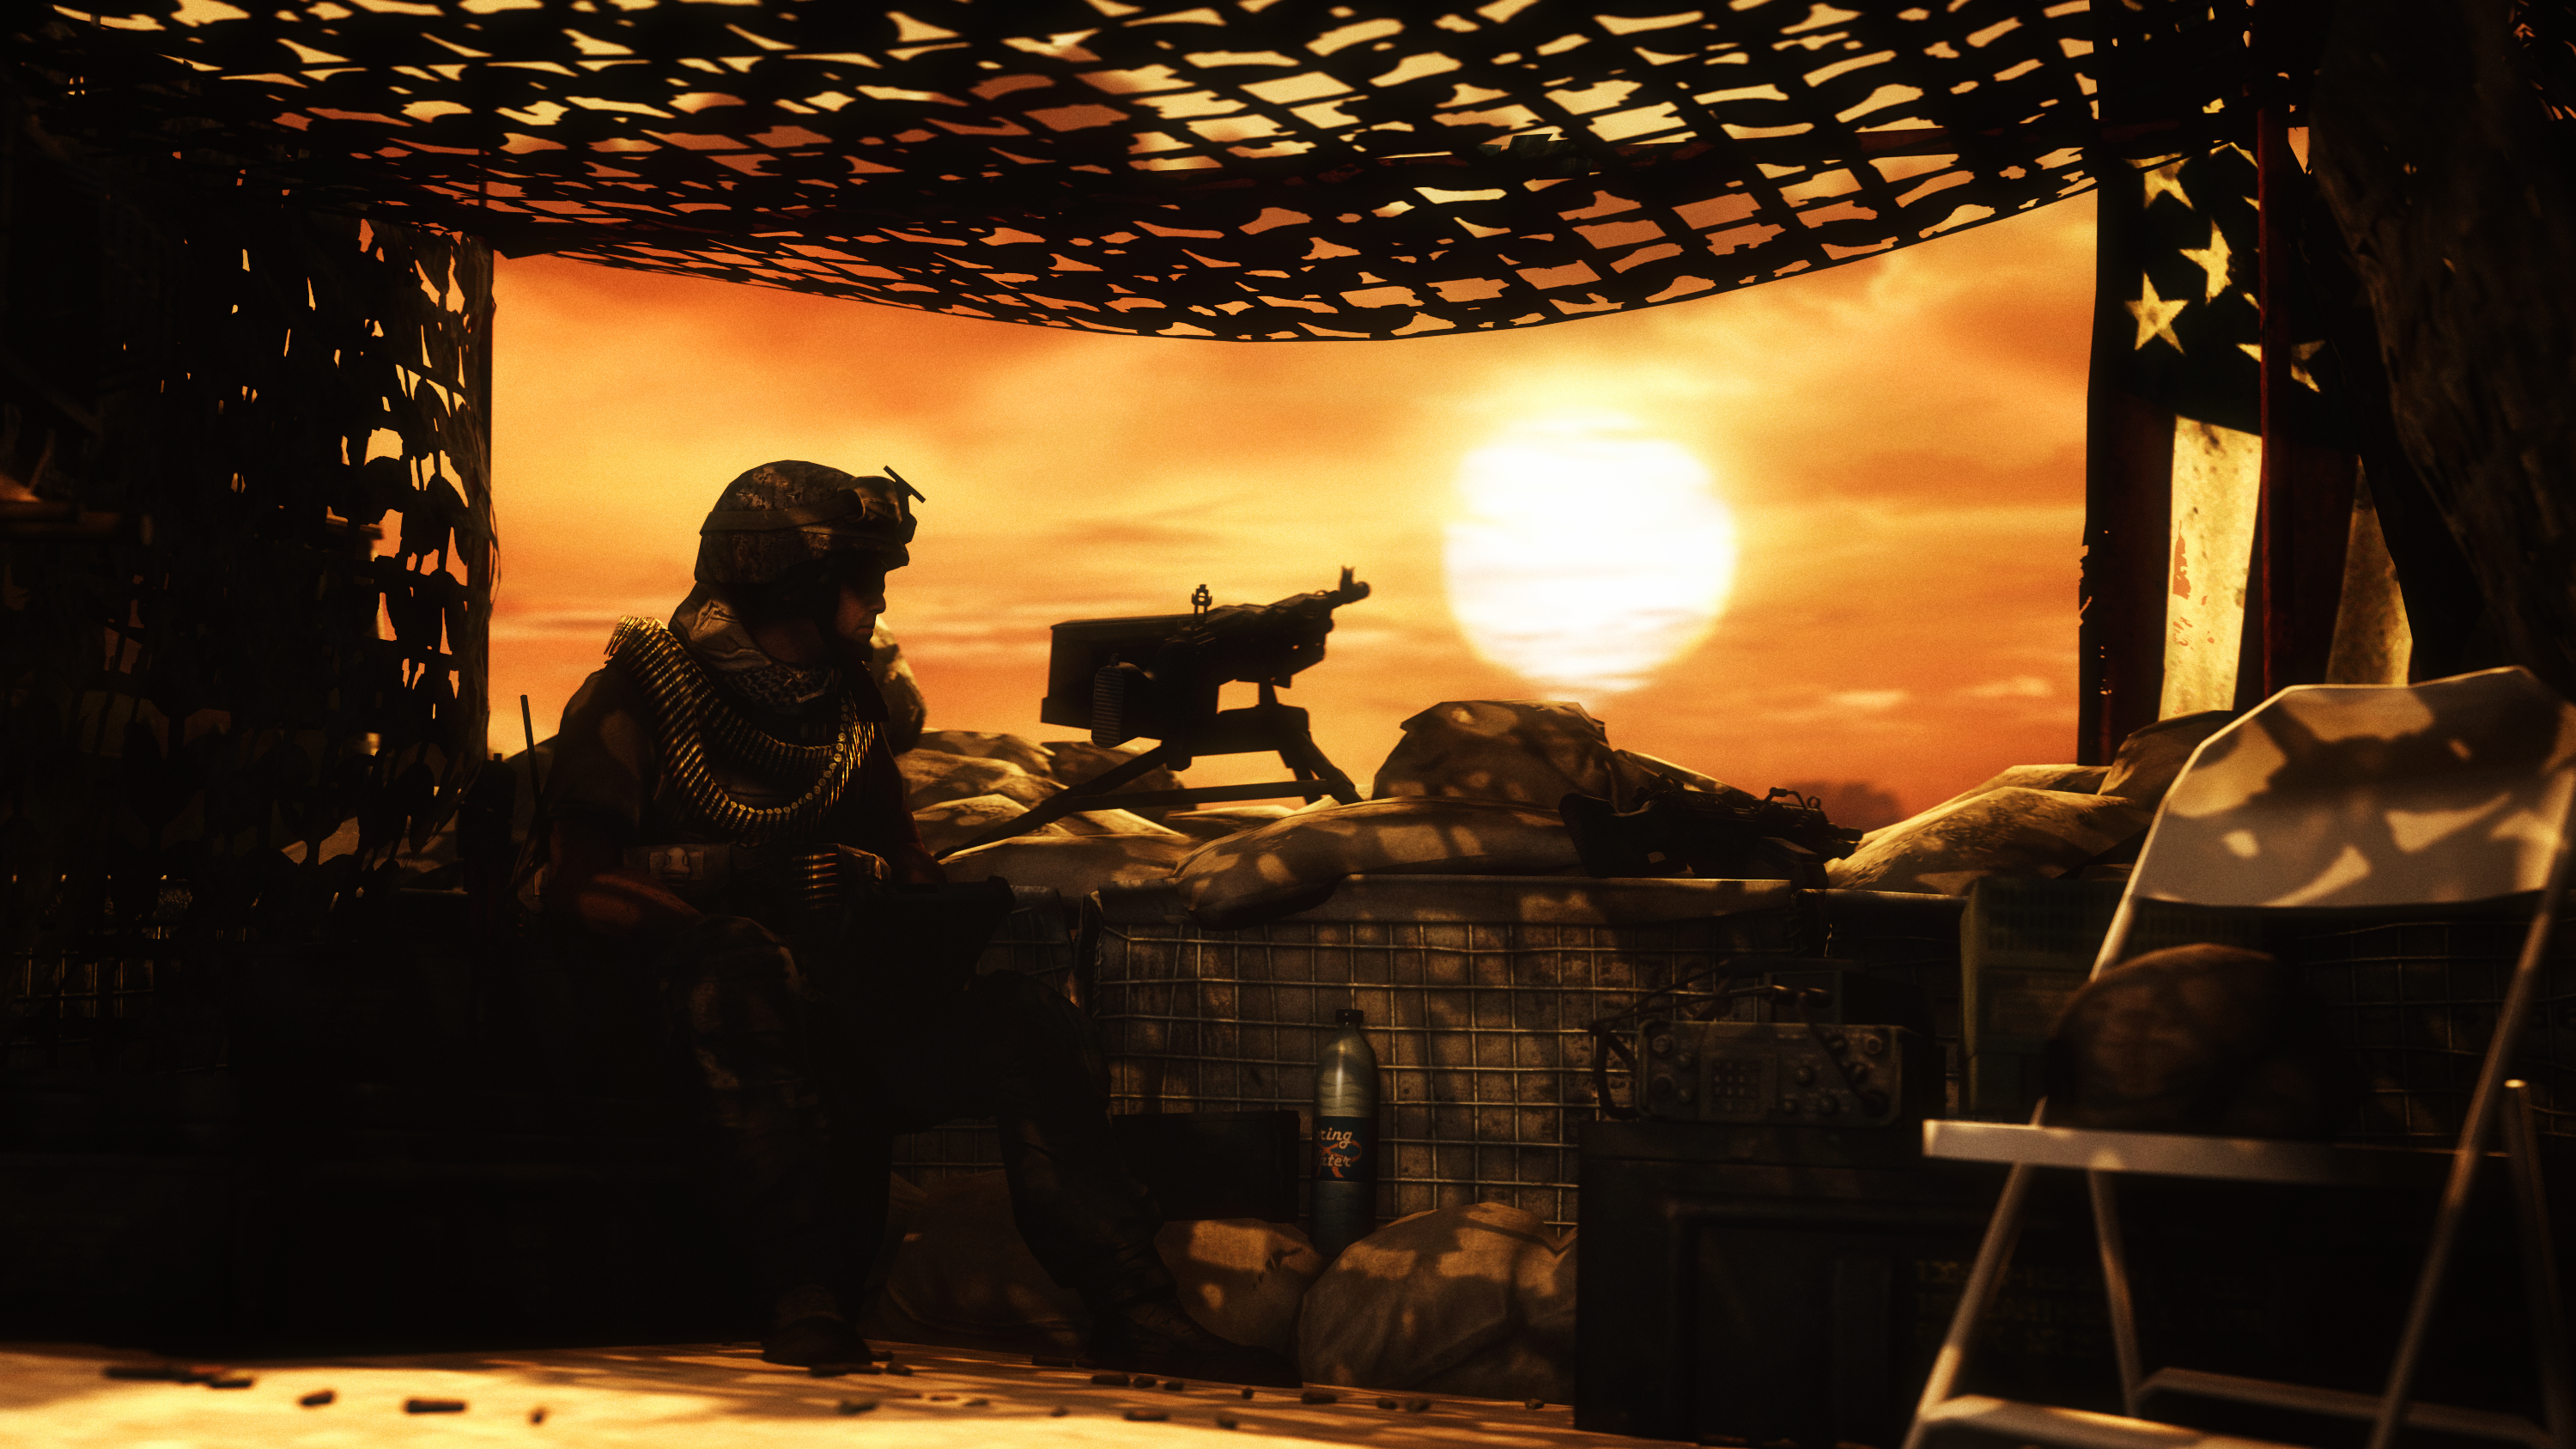 spec ops the line mod